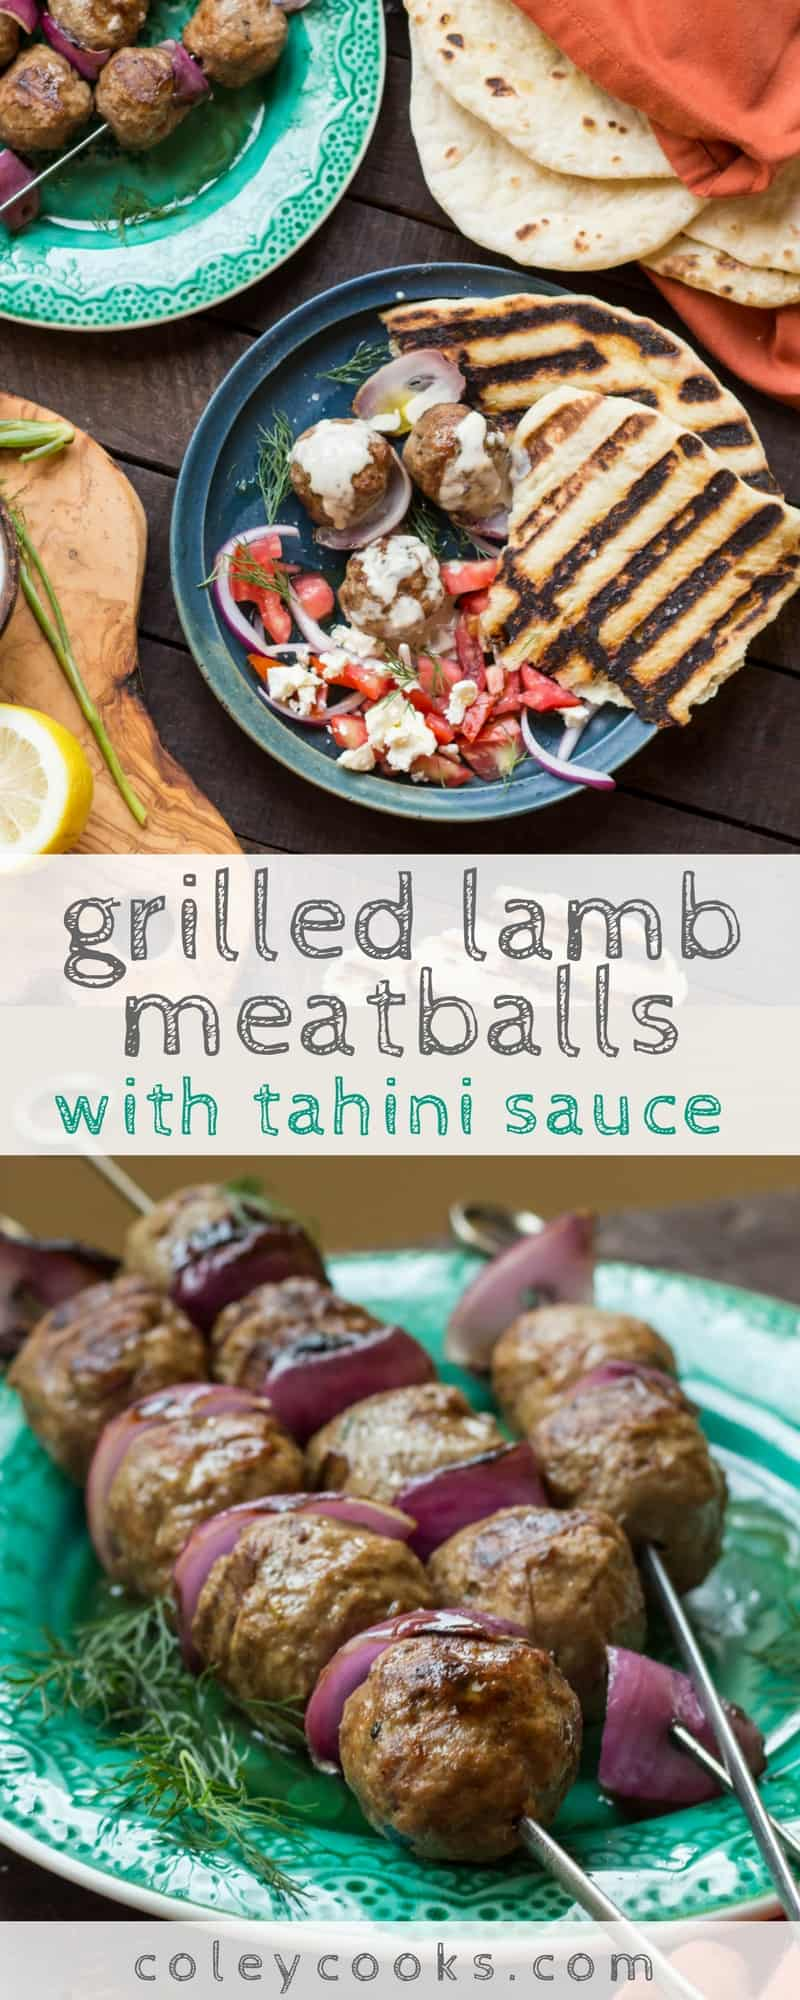 GRILLED LAMB MEATBALLS with TAHINI SAUCE | This simple recipe makes an easy and delicious weeknight dinner! They're full of flavor, gluten free and served with a lemony tahini sauce for dipping! #glutenfree| ColeyCooks.com